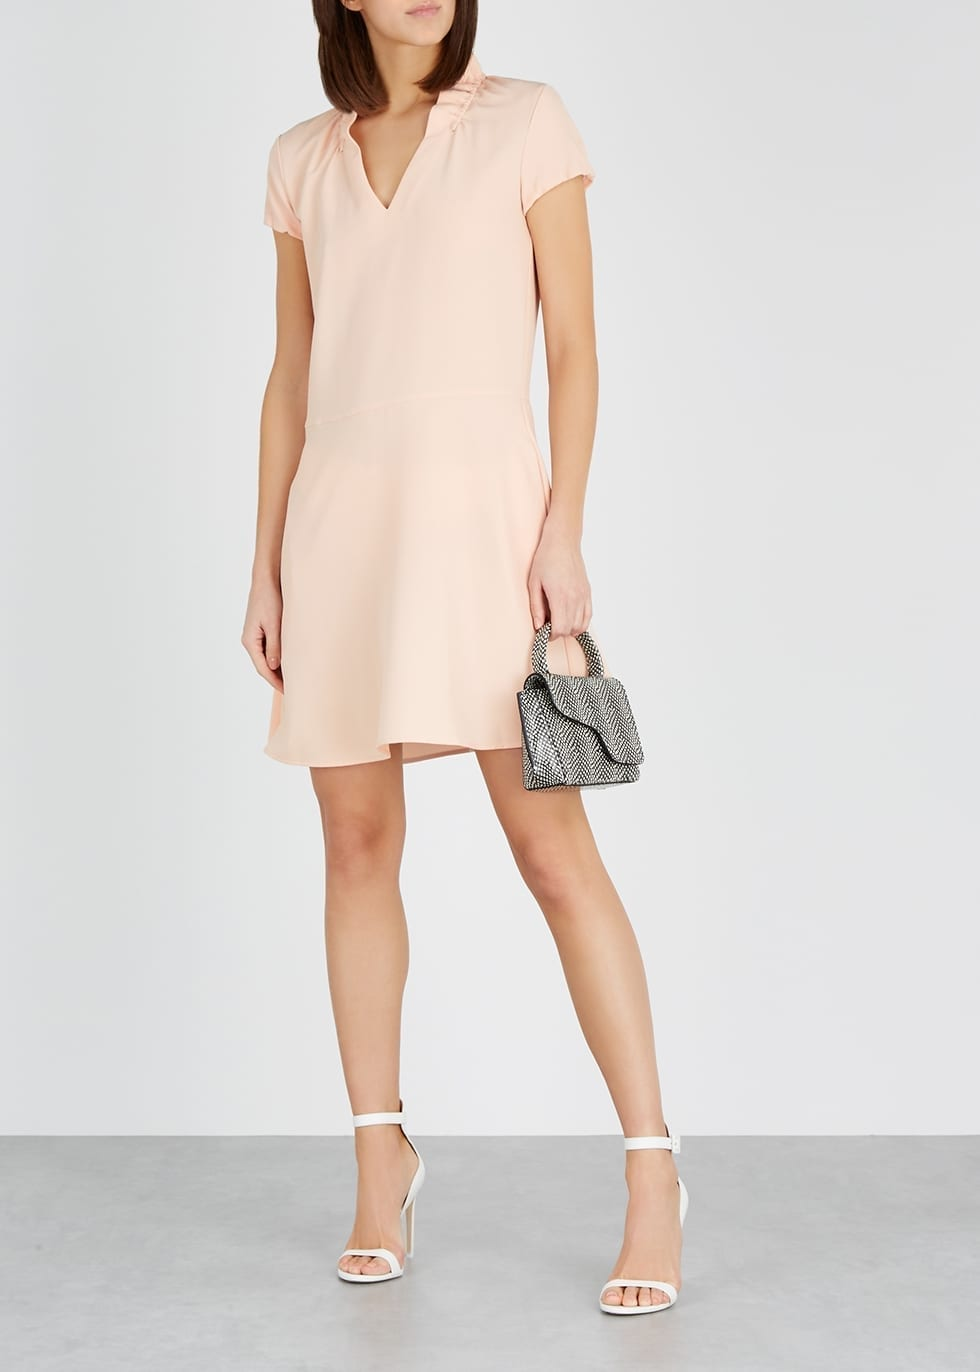 EMPORIO ARMANI Ruched Crepe Blush Dress